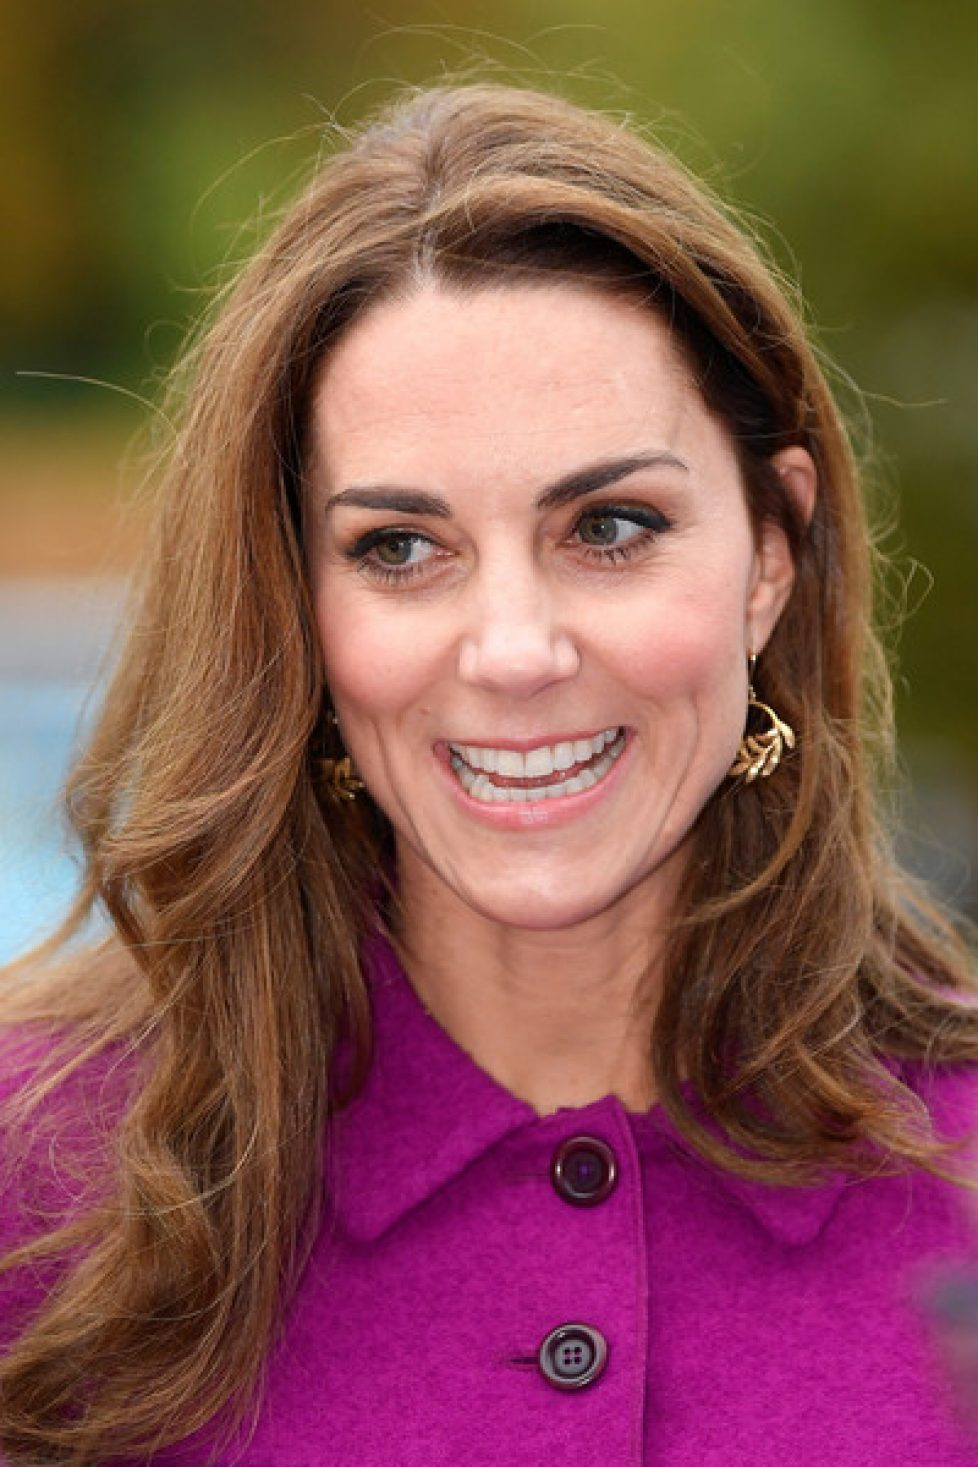 Duchess+Cambridge+Opens+Nook+Children+Hospice+7A4Mt3m852nl